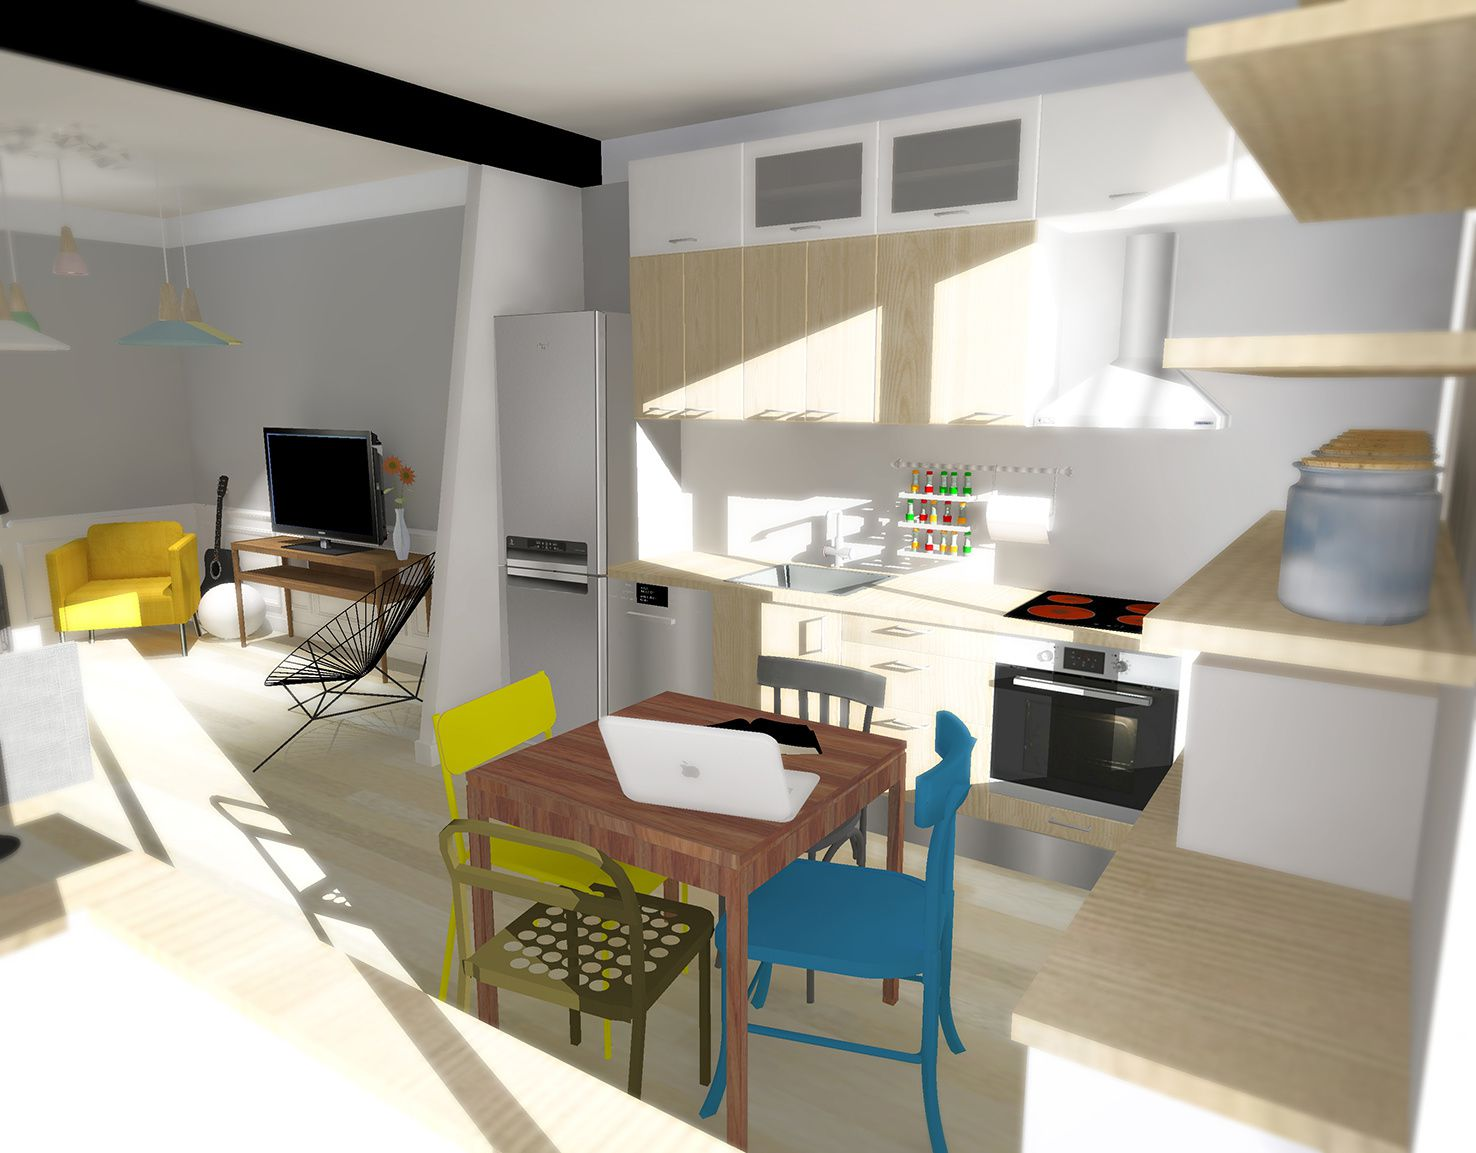 Appartement souplex en cours l k kevin zanni architecte for Conception 3d appartement